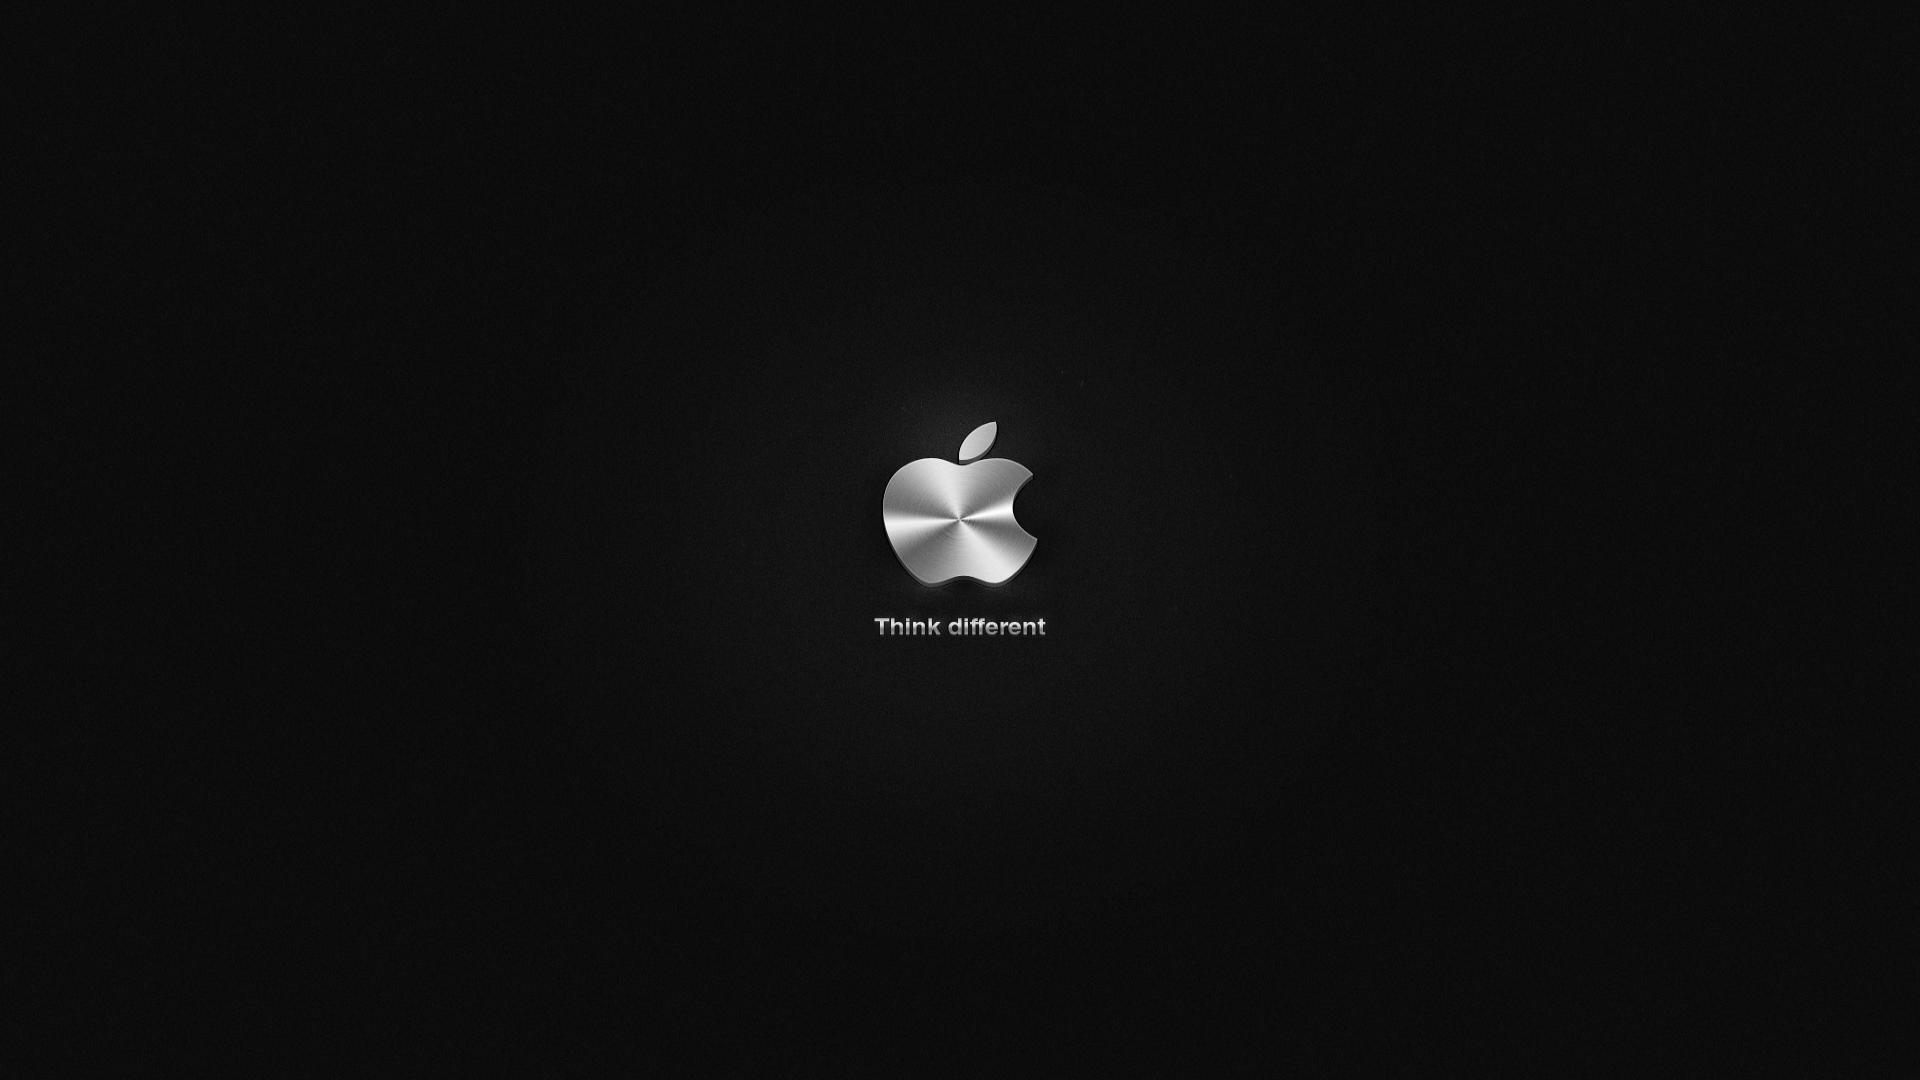 apple brand HD Wallpapers for all resolution HD 1920x1080 Brand 1920x1080